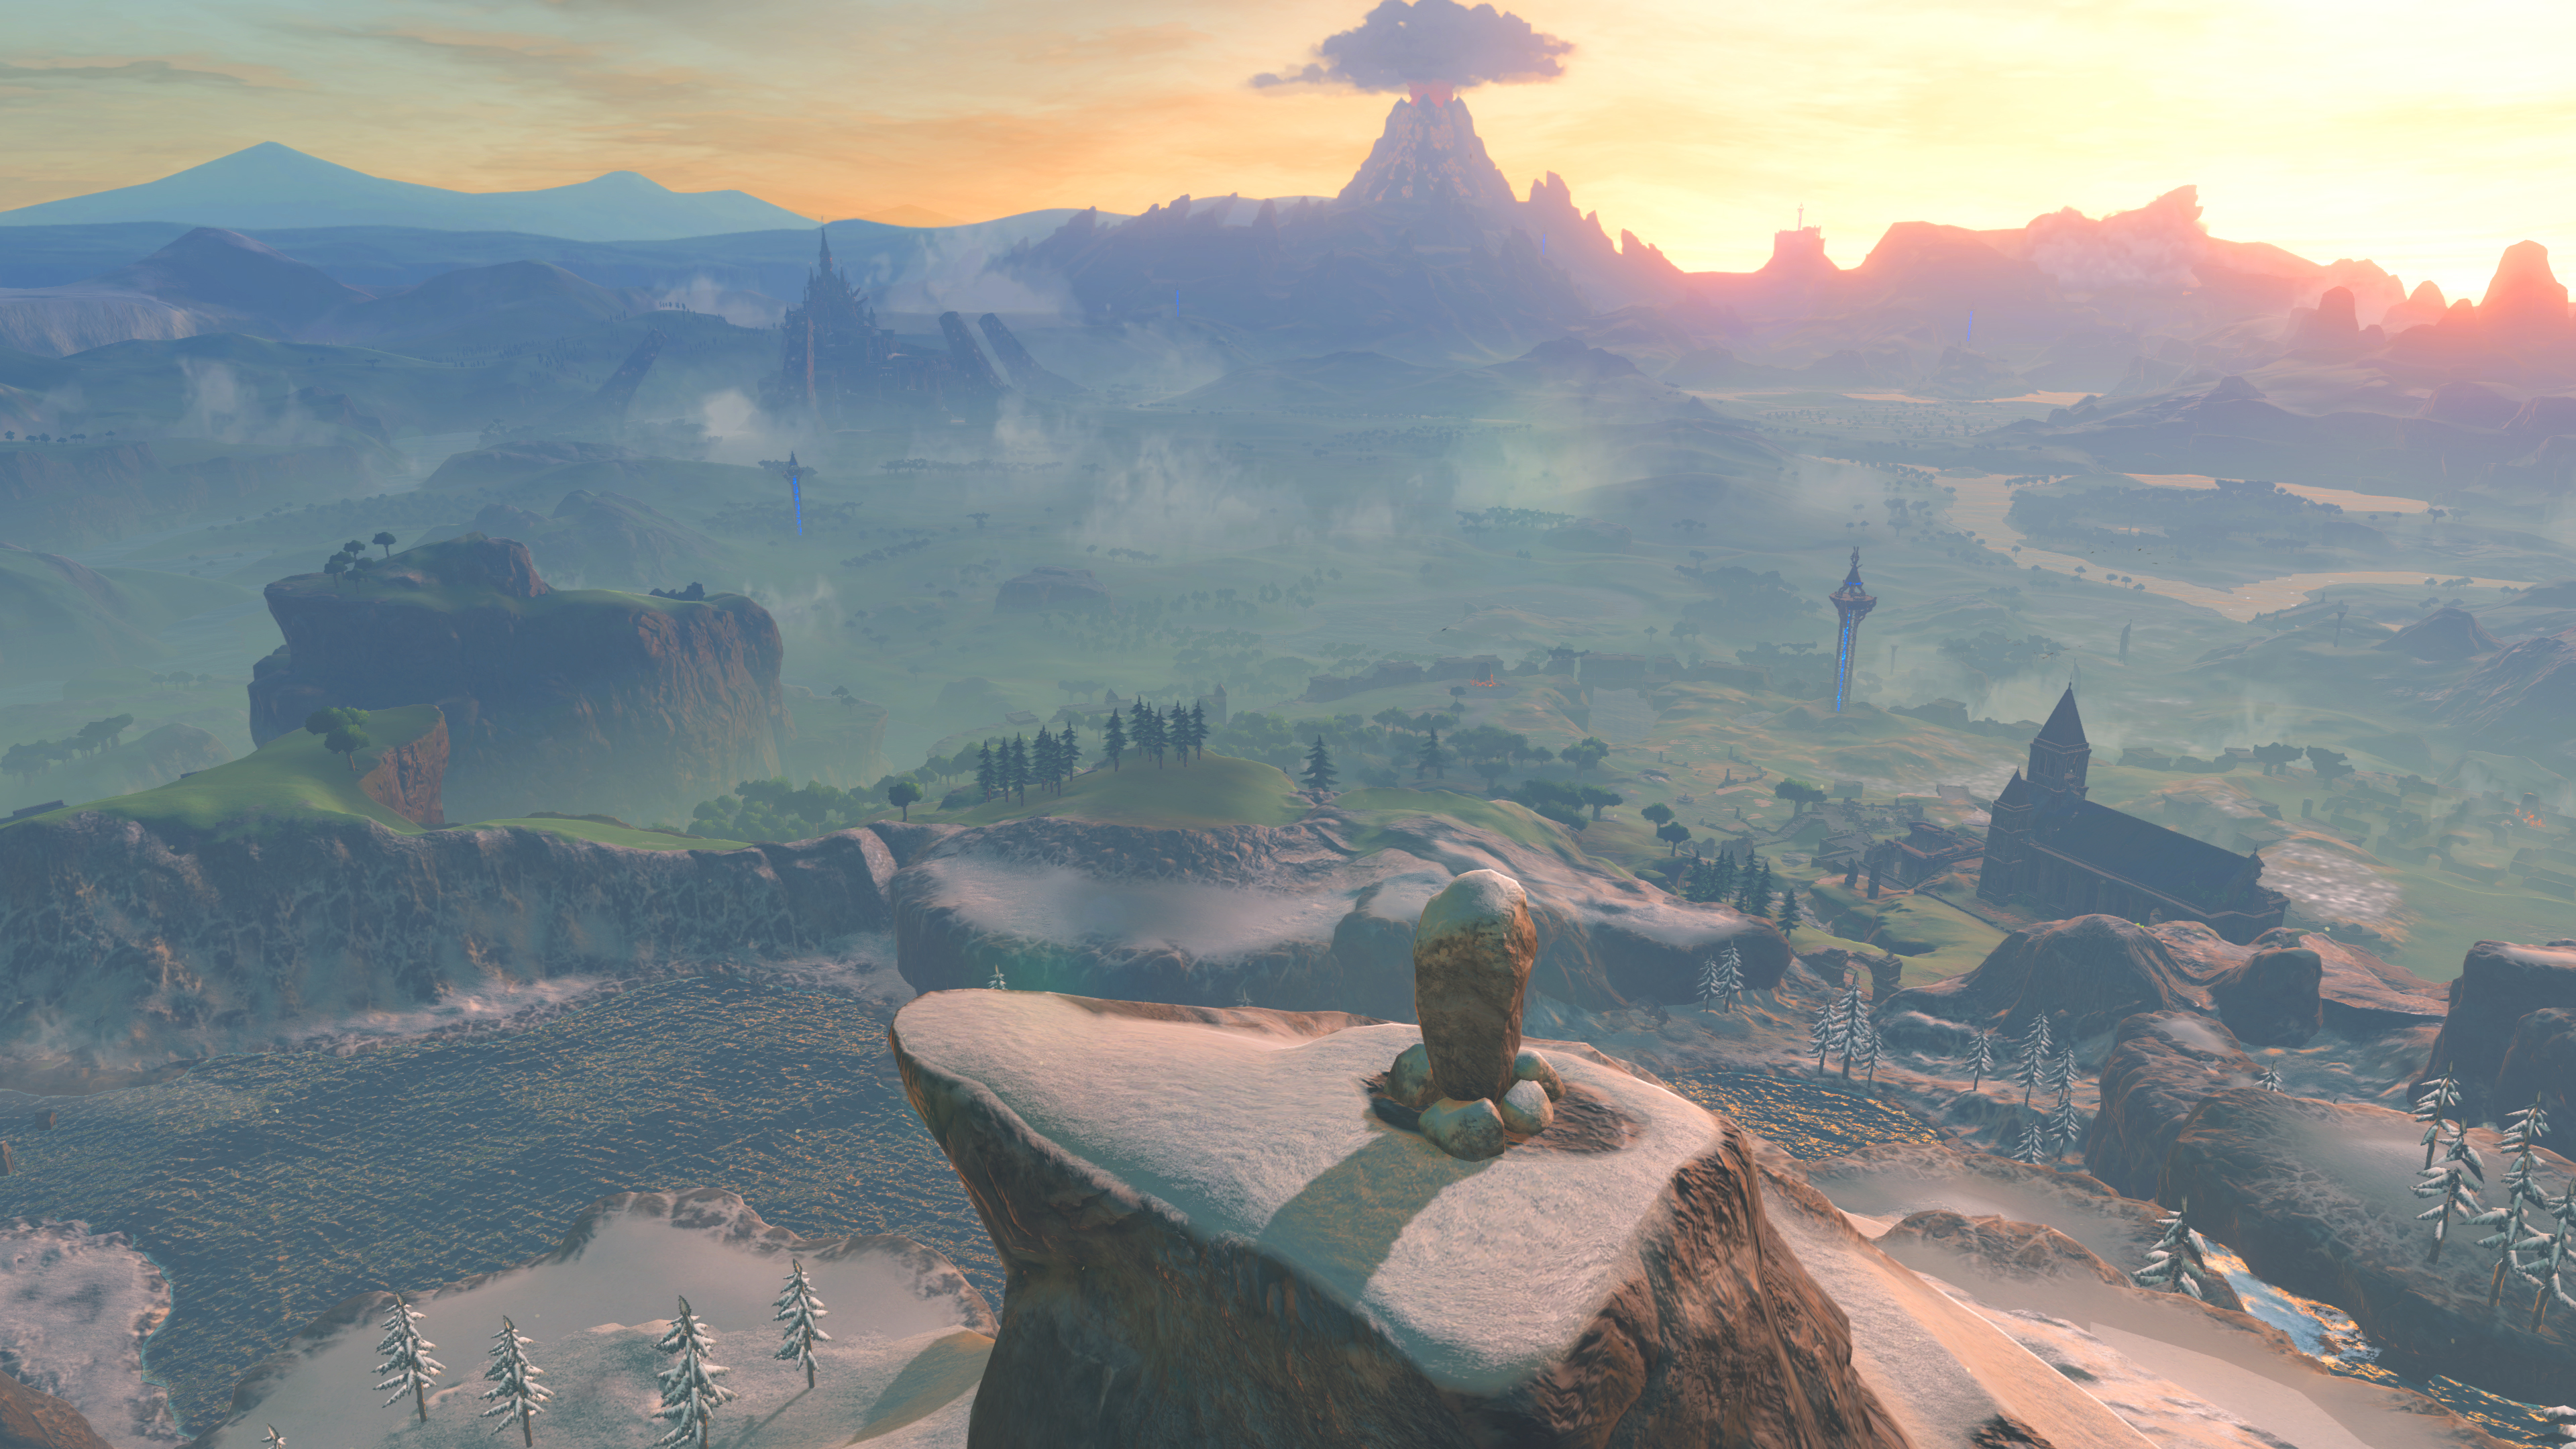 How I Learned to Love the DIY Map in 'Breath of the Wild' - VICE